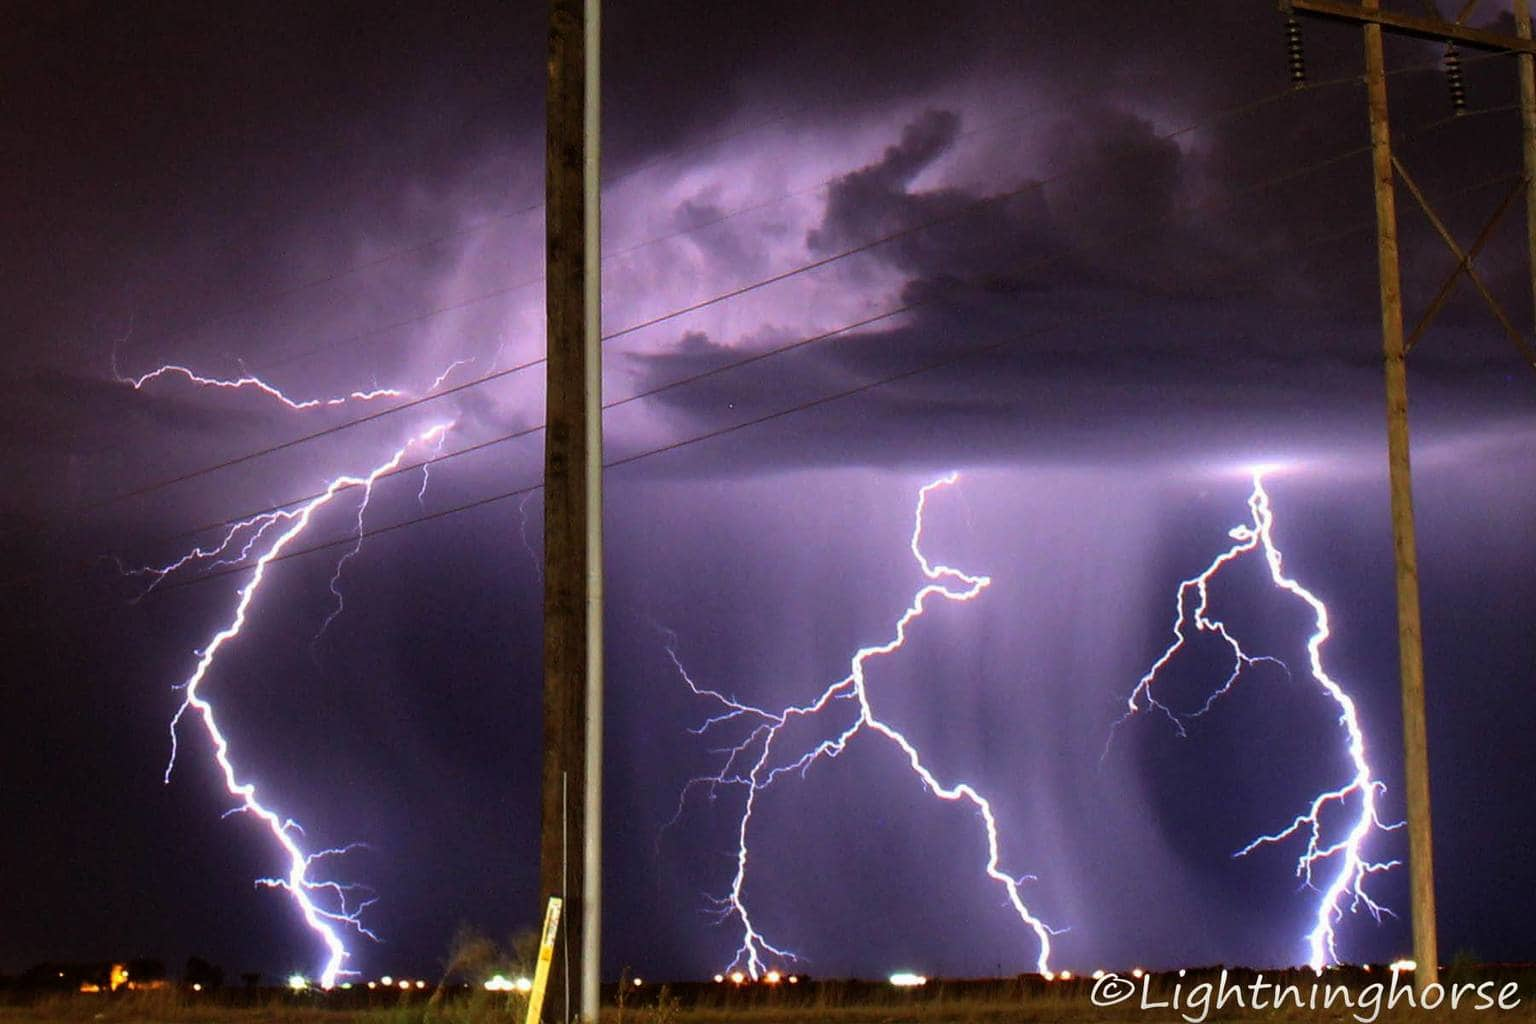 I lived in Tucson for 17 yrs before moving to Amarillo 4 yrs ago. When in Tucson I did alot of Lightning photography and felt that the storms weren't powerful enough in Amarillo...until this night!